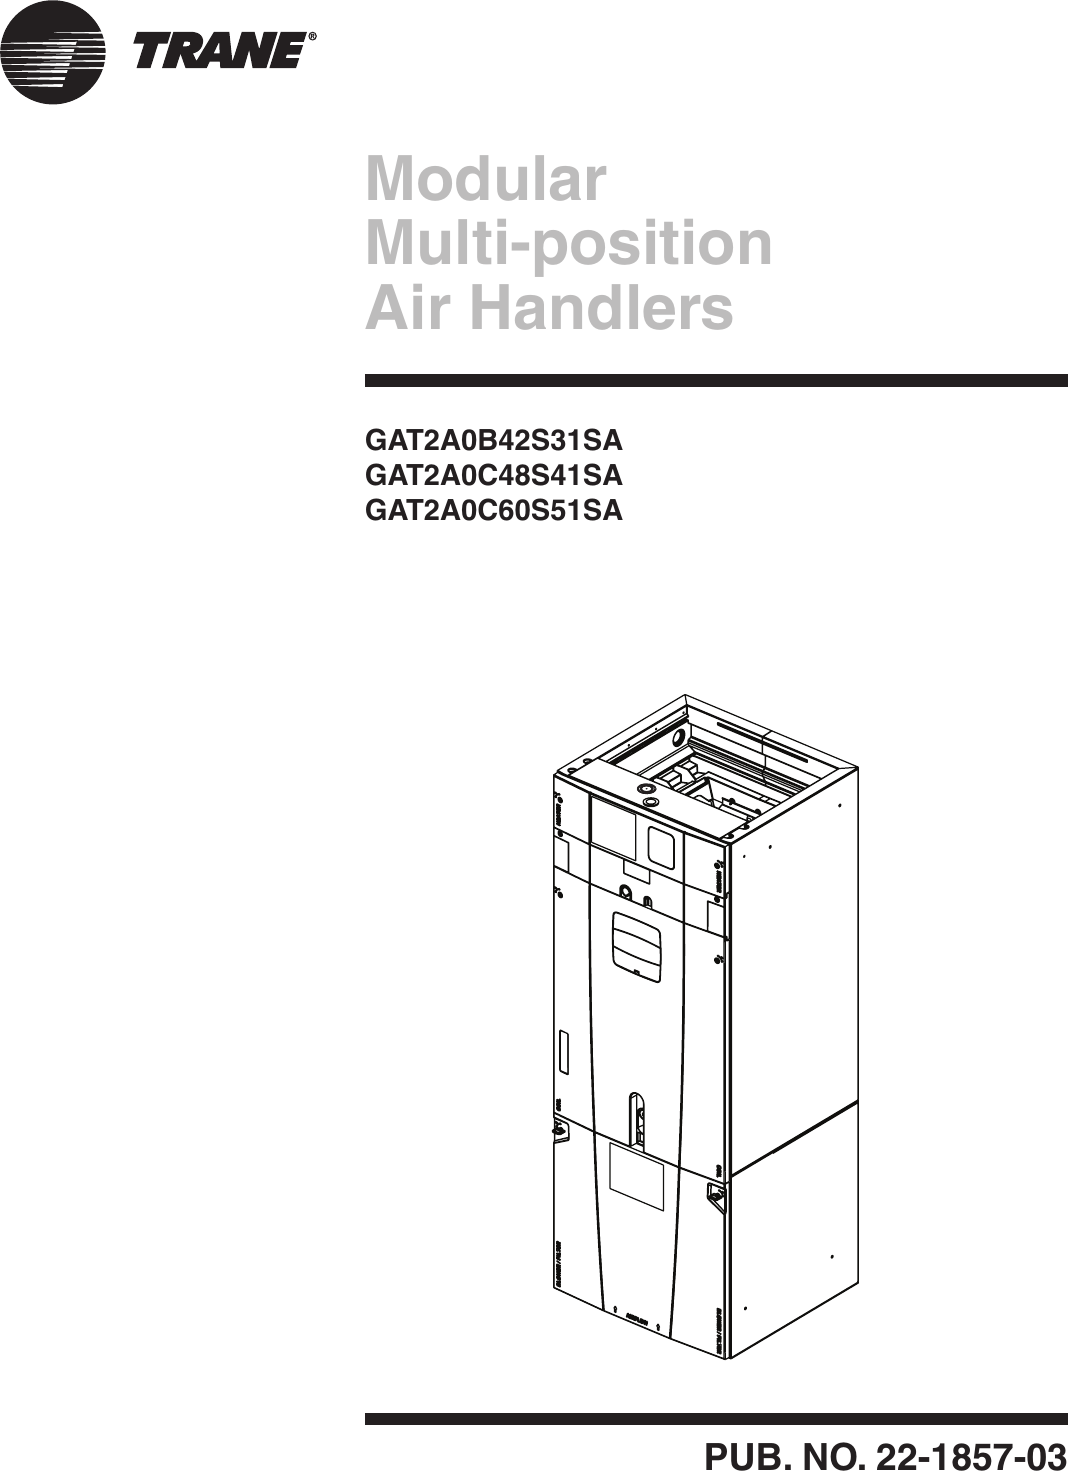 Trane Gat2a0c48s41sa Users Manual 22 1857 03 01 2012 Modular Diagram Air Handler Also In Addition Multi Position Handlers Gat2a